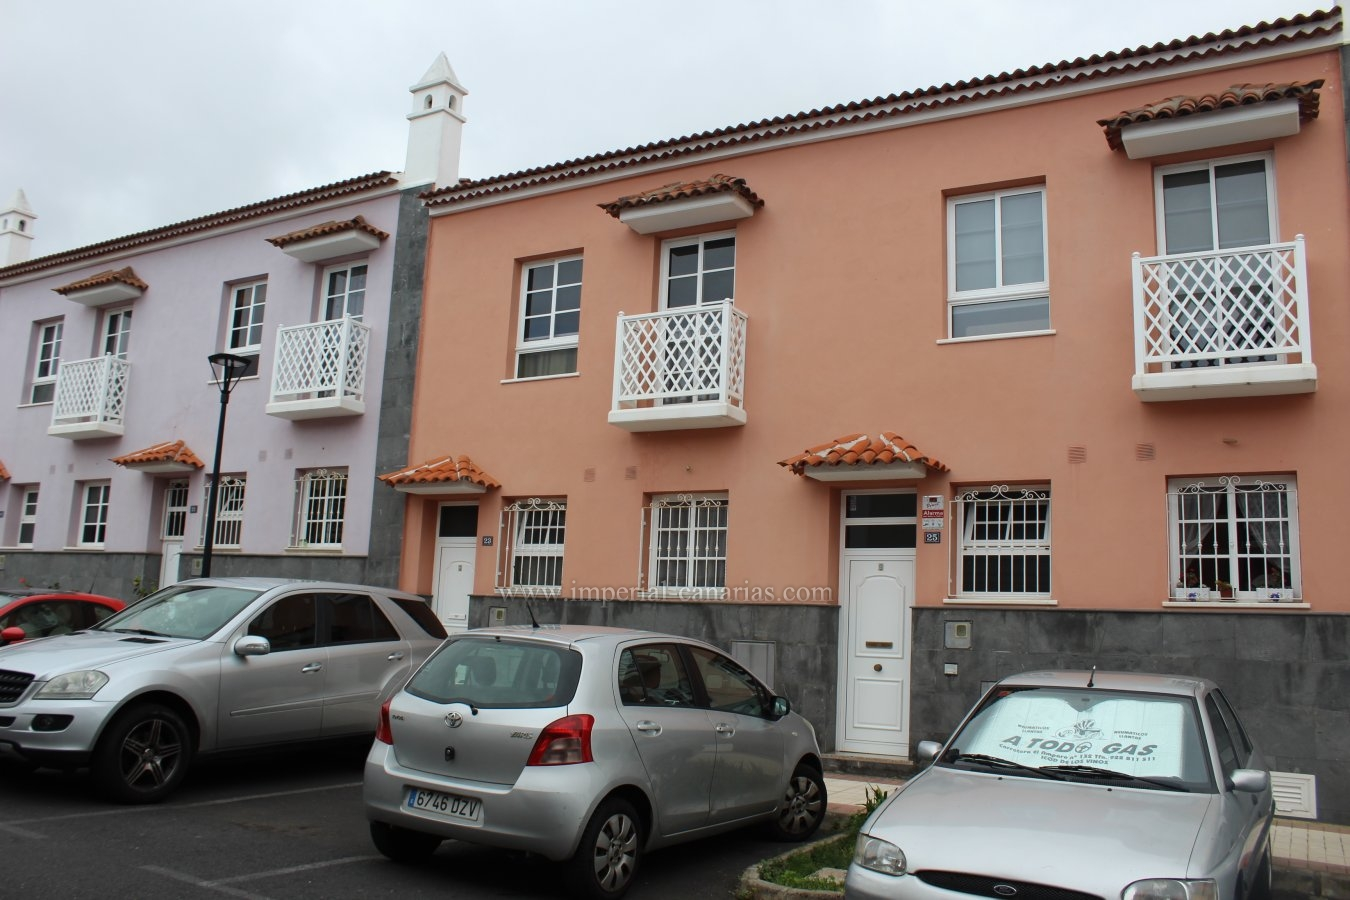 Fabulous and impeccable town house ideal for a family in quiet area of Puerto de la Cruz.